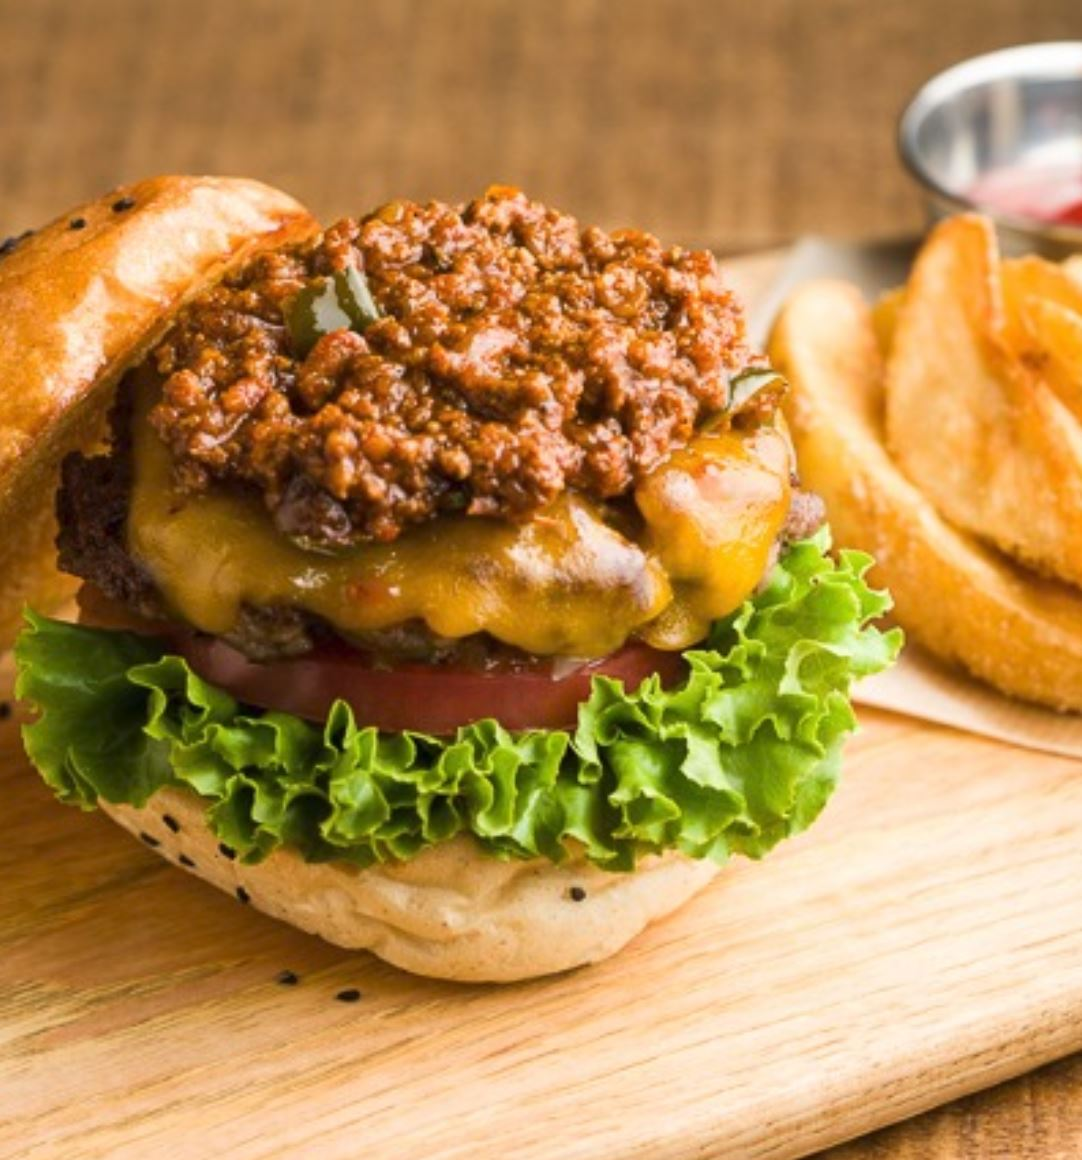 SPICY CHILI CHEESE BURGER